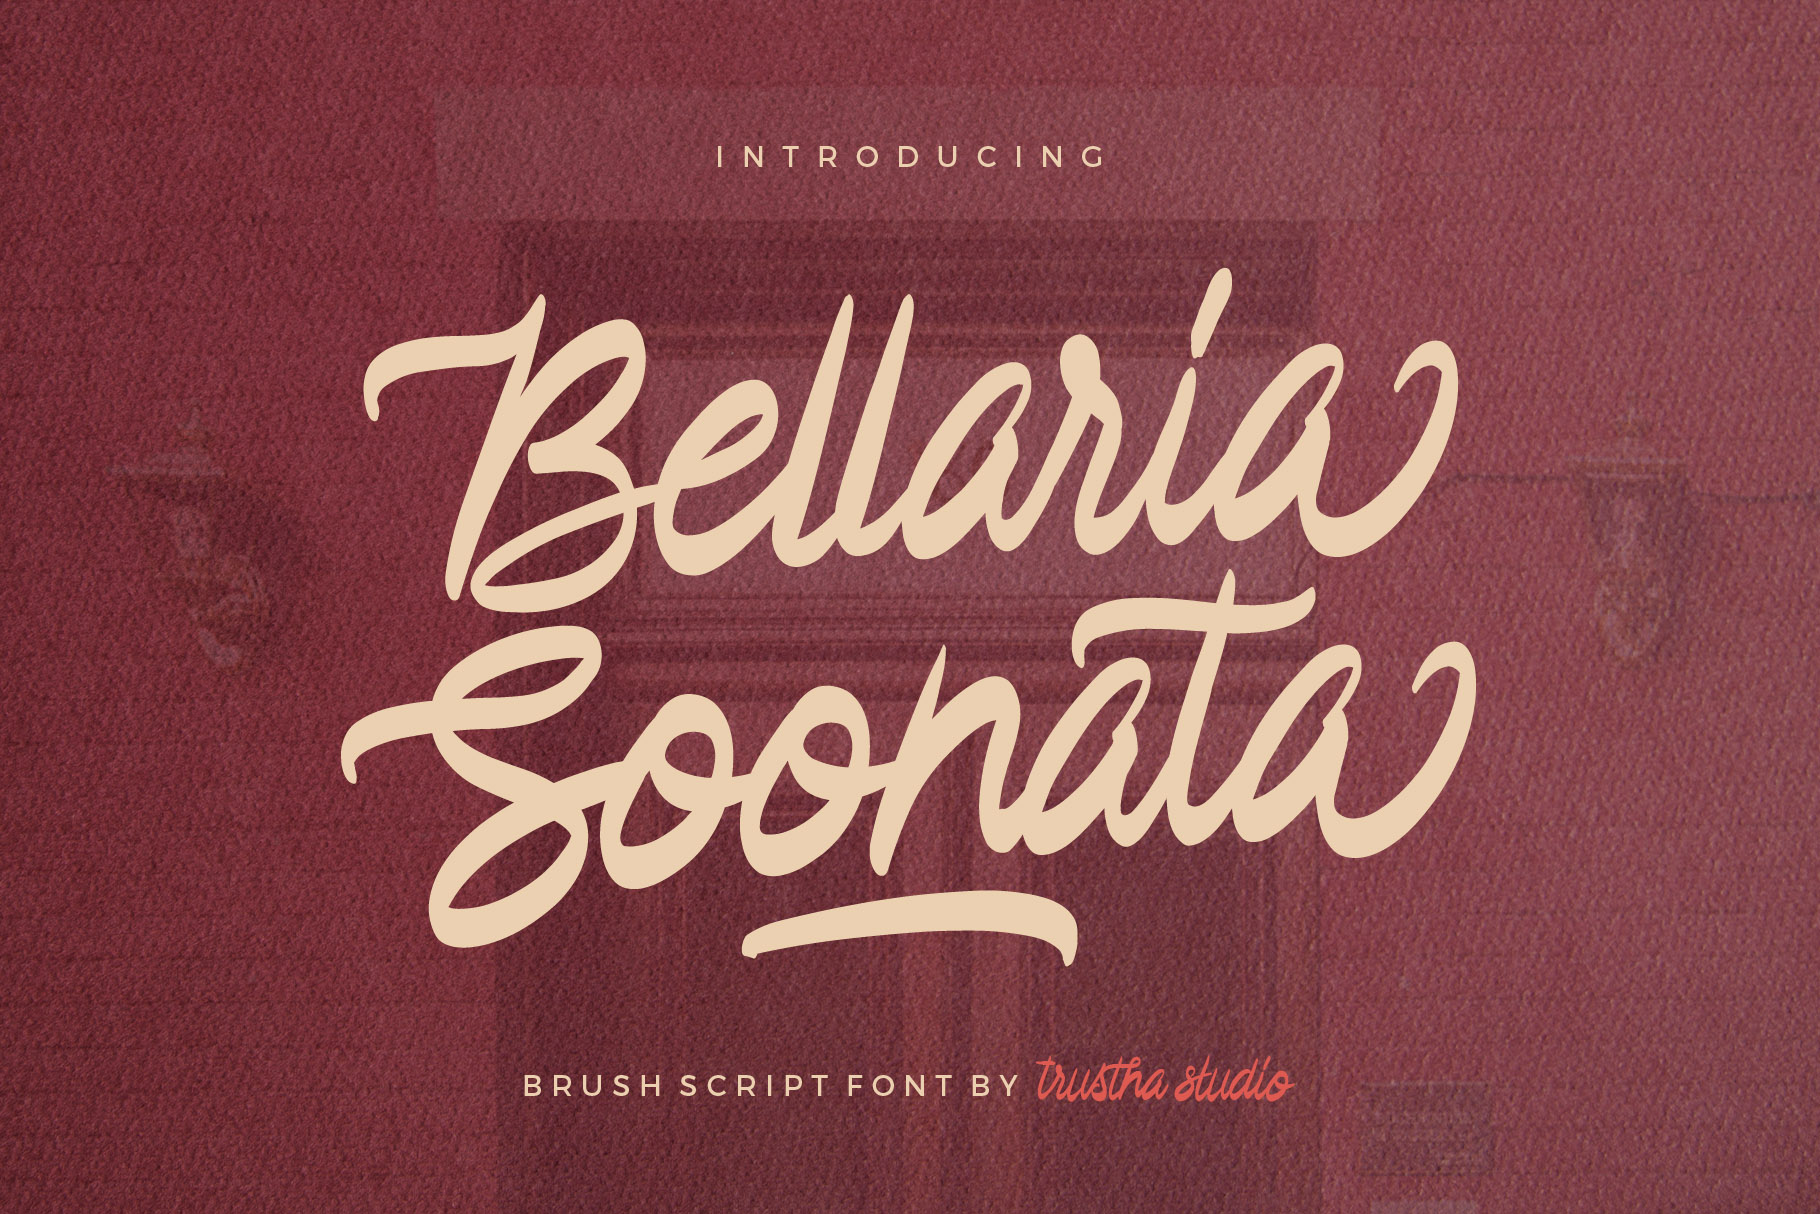 Print on Demand: Bellaria Soonata Display Font By trusthastd